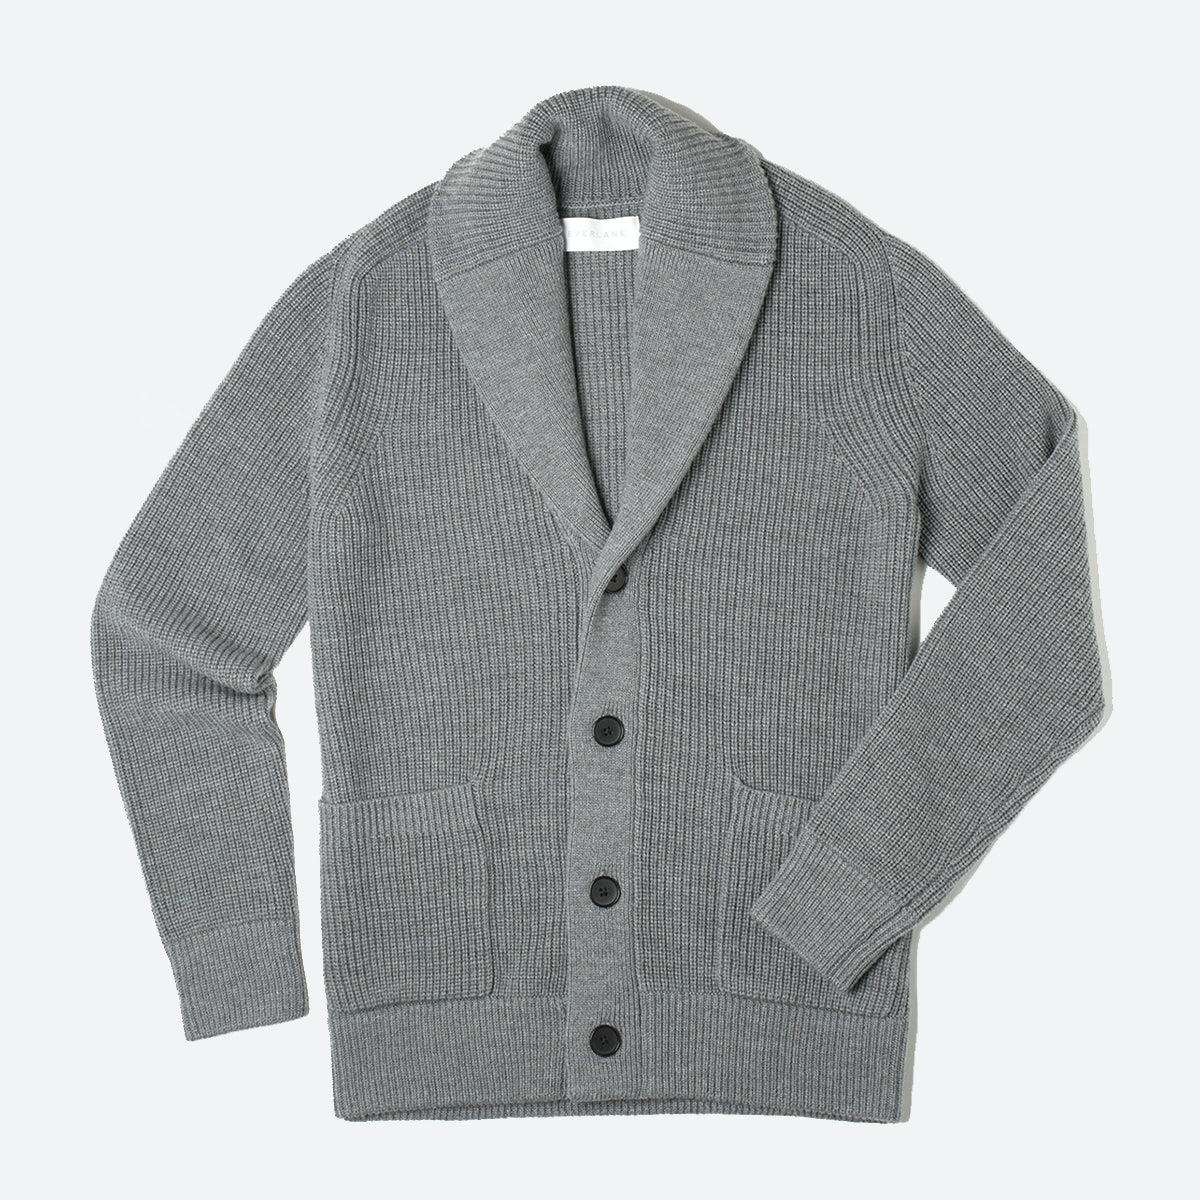 Men's Chunky Knit Cardigan | Everlane